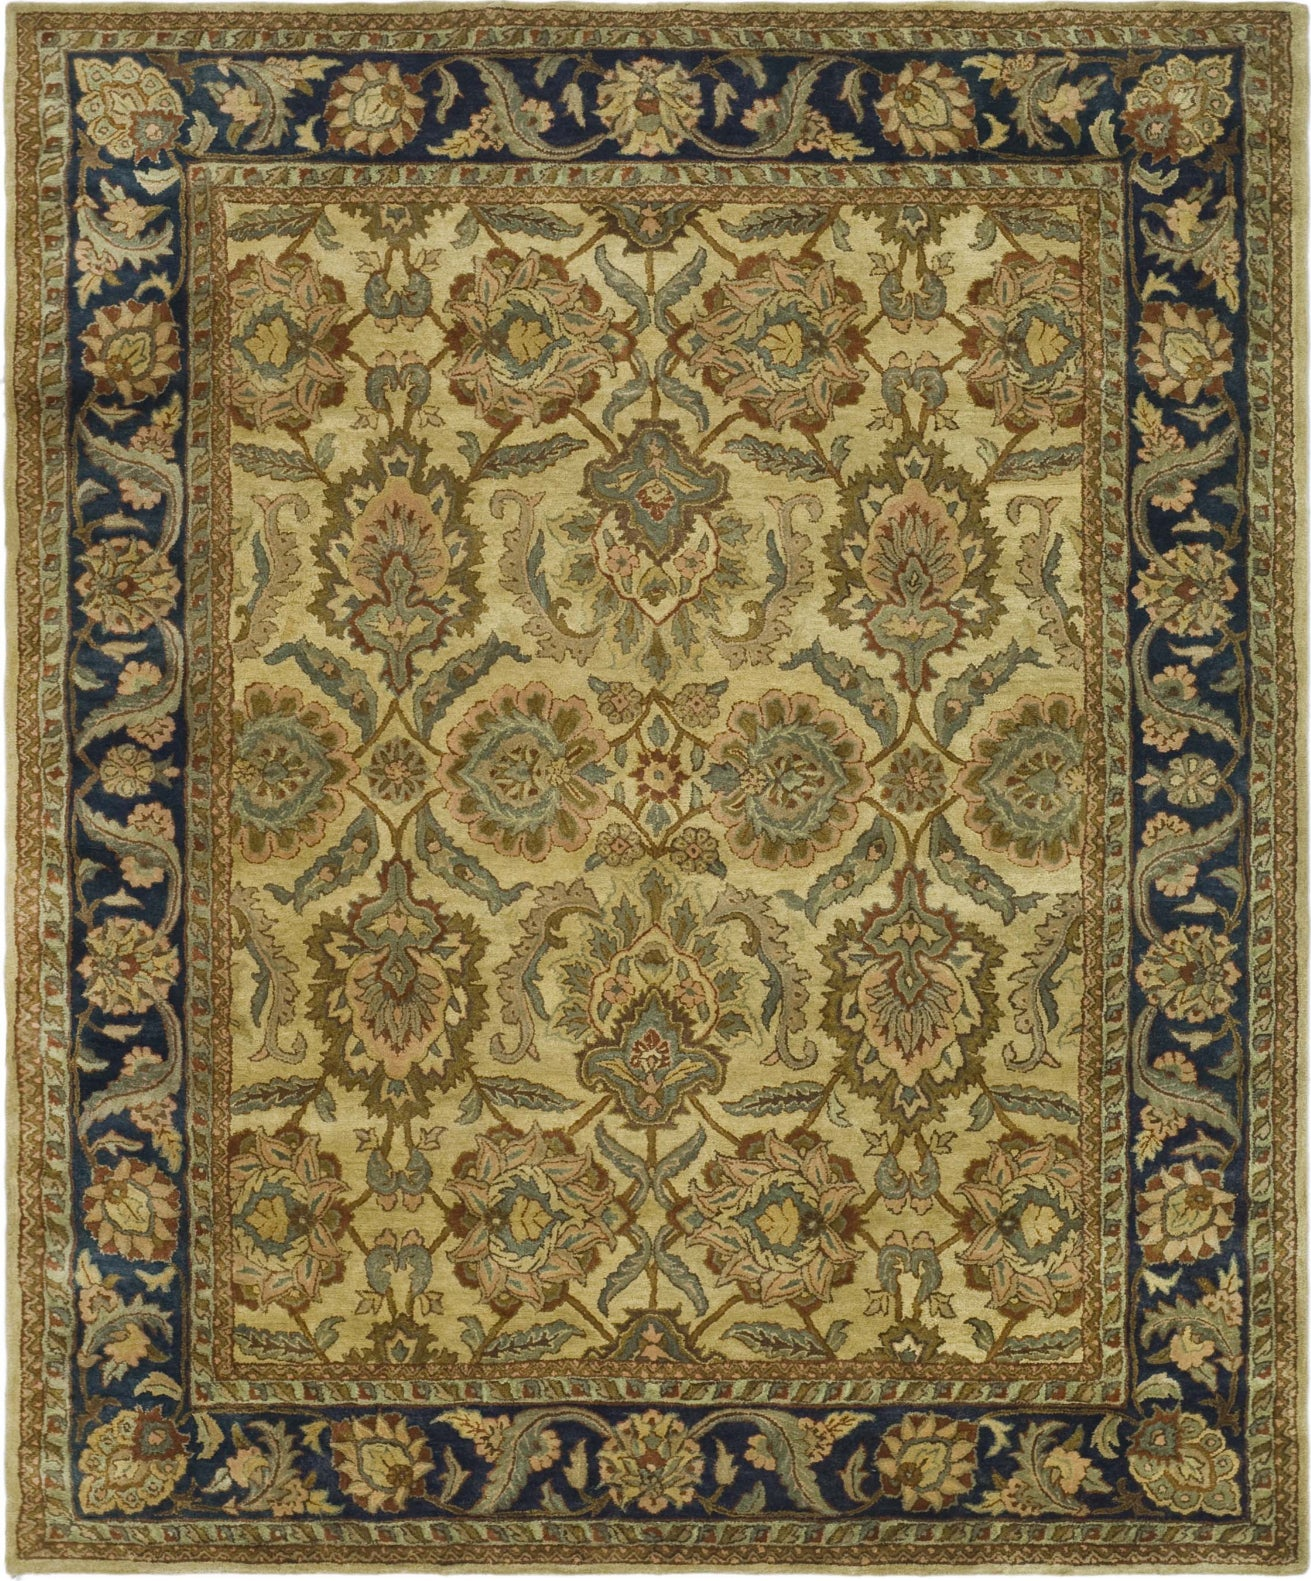 Safavieh Heritage 172 Beige Blue Area Rug Incredible Rugs And Decor